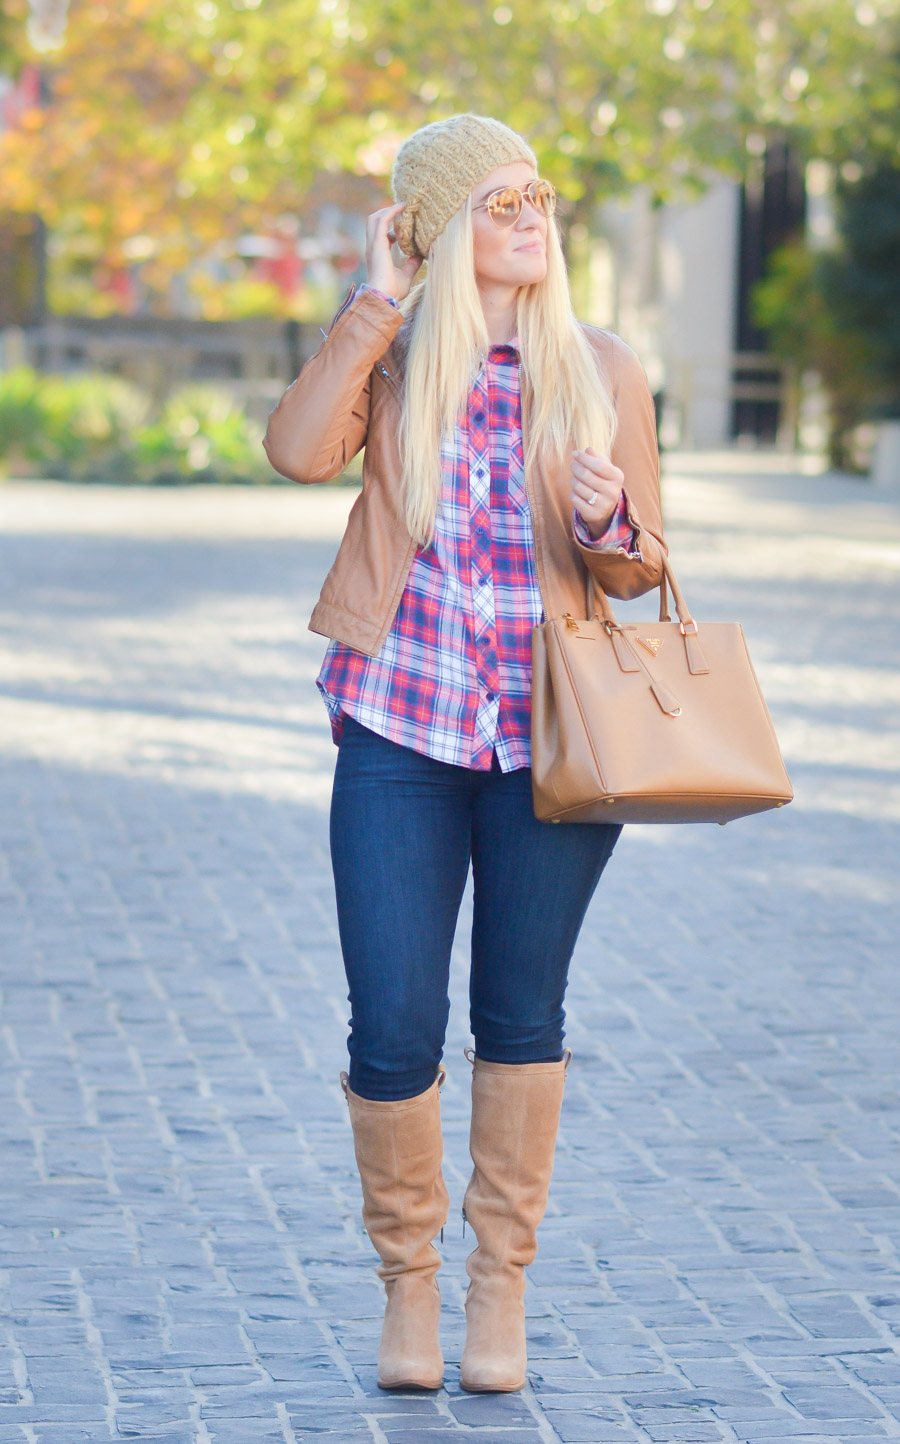 how to look chic in flannel shirts